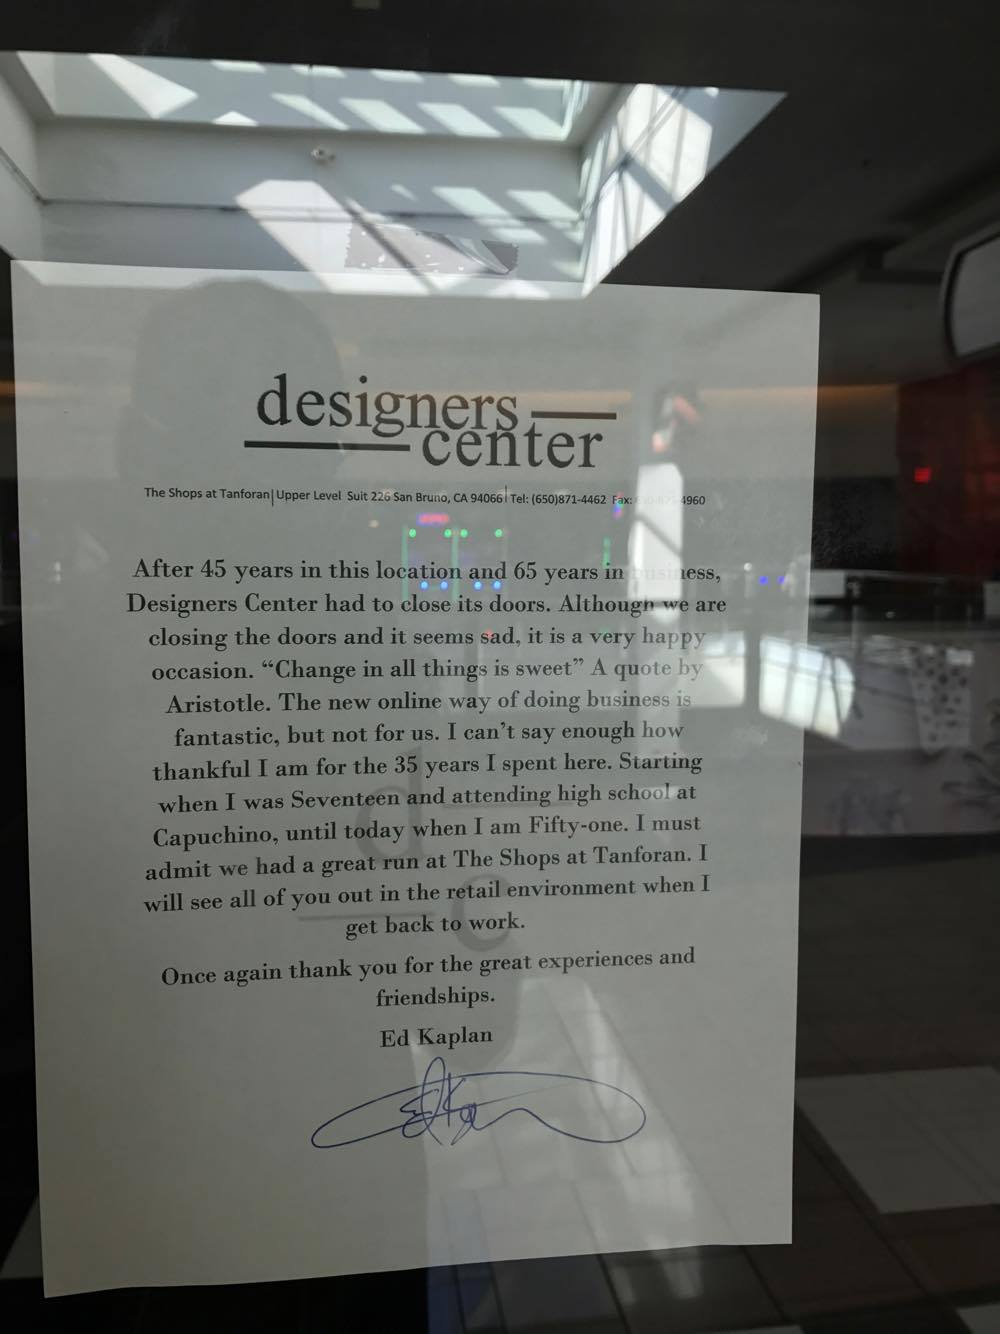 Designer Center to Close their Doors After 45 Years in Tanforan Mall